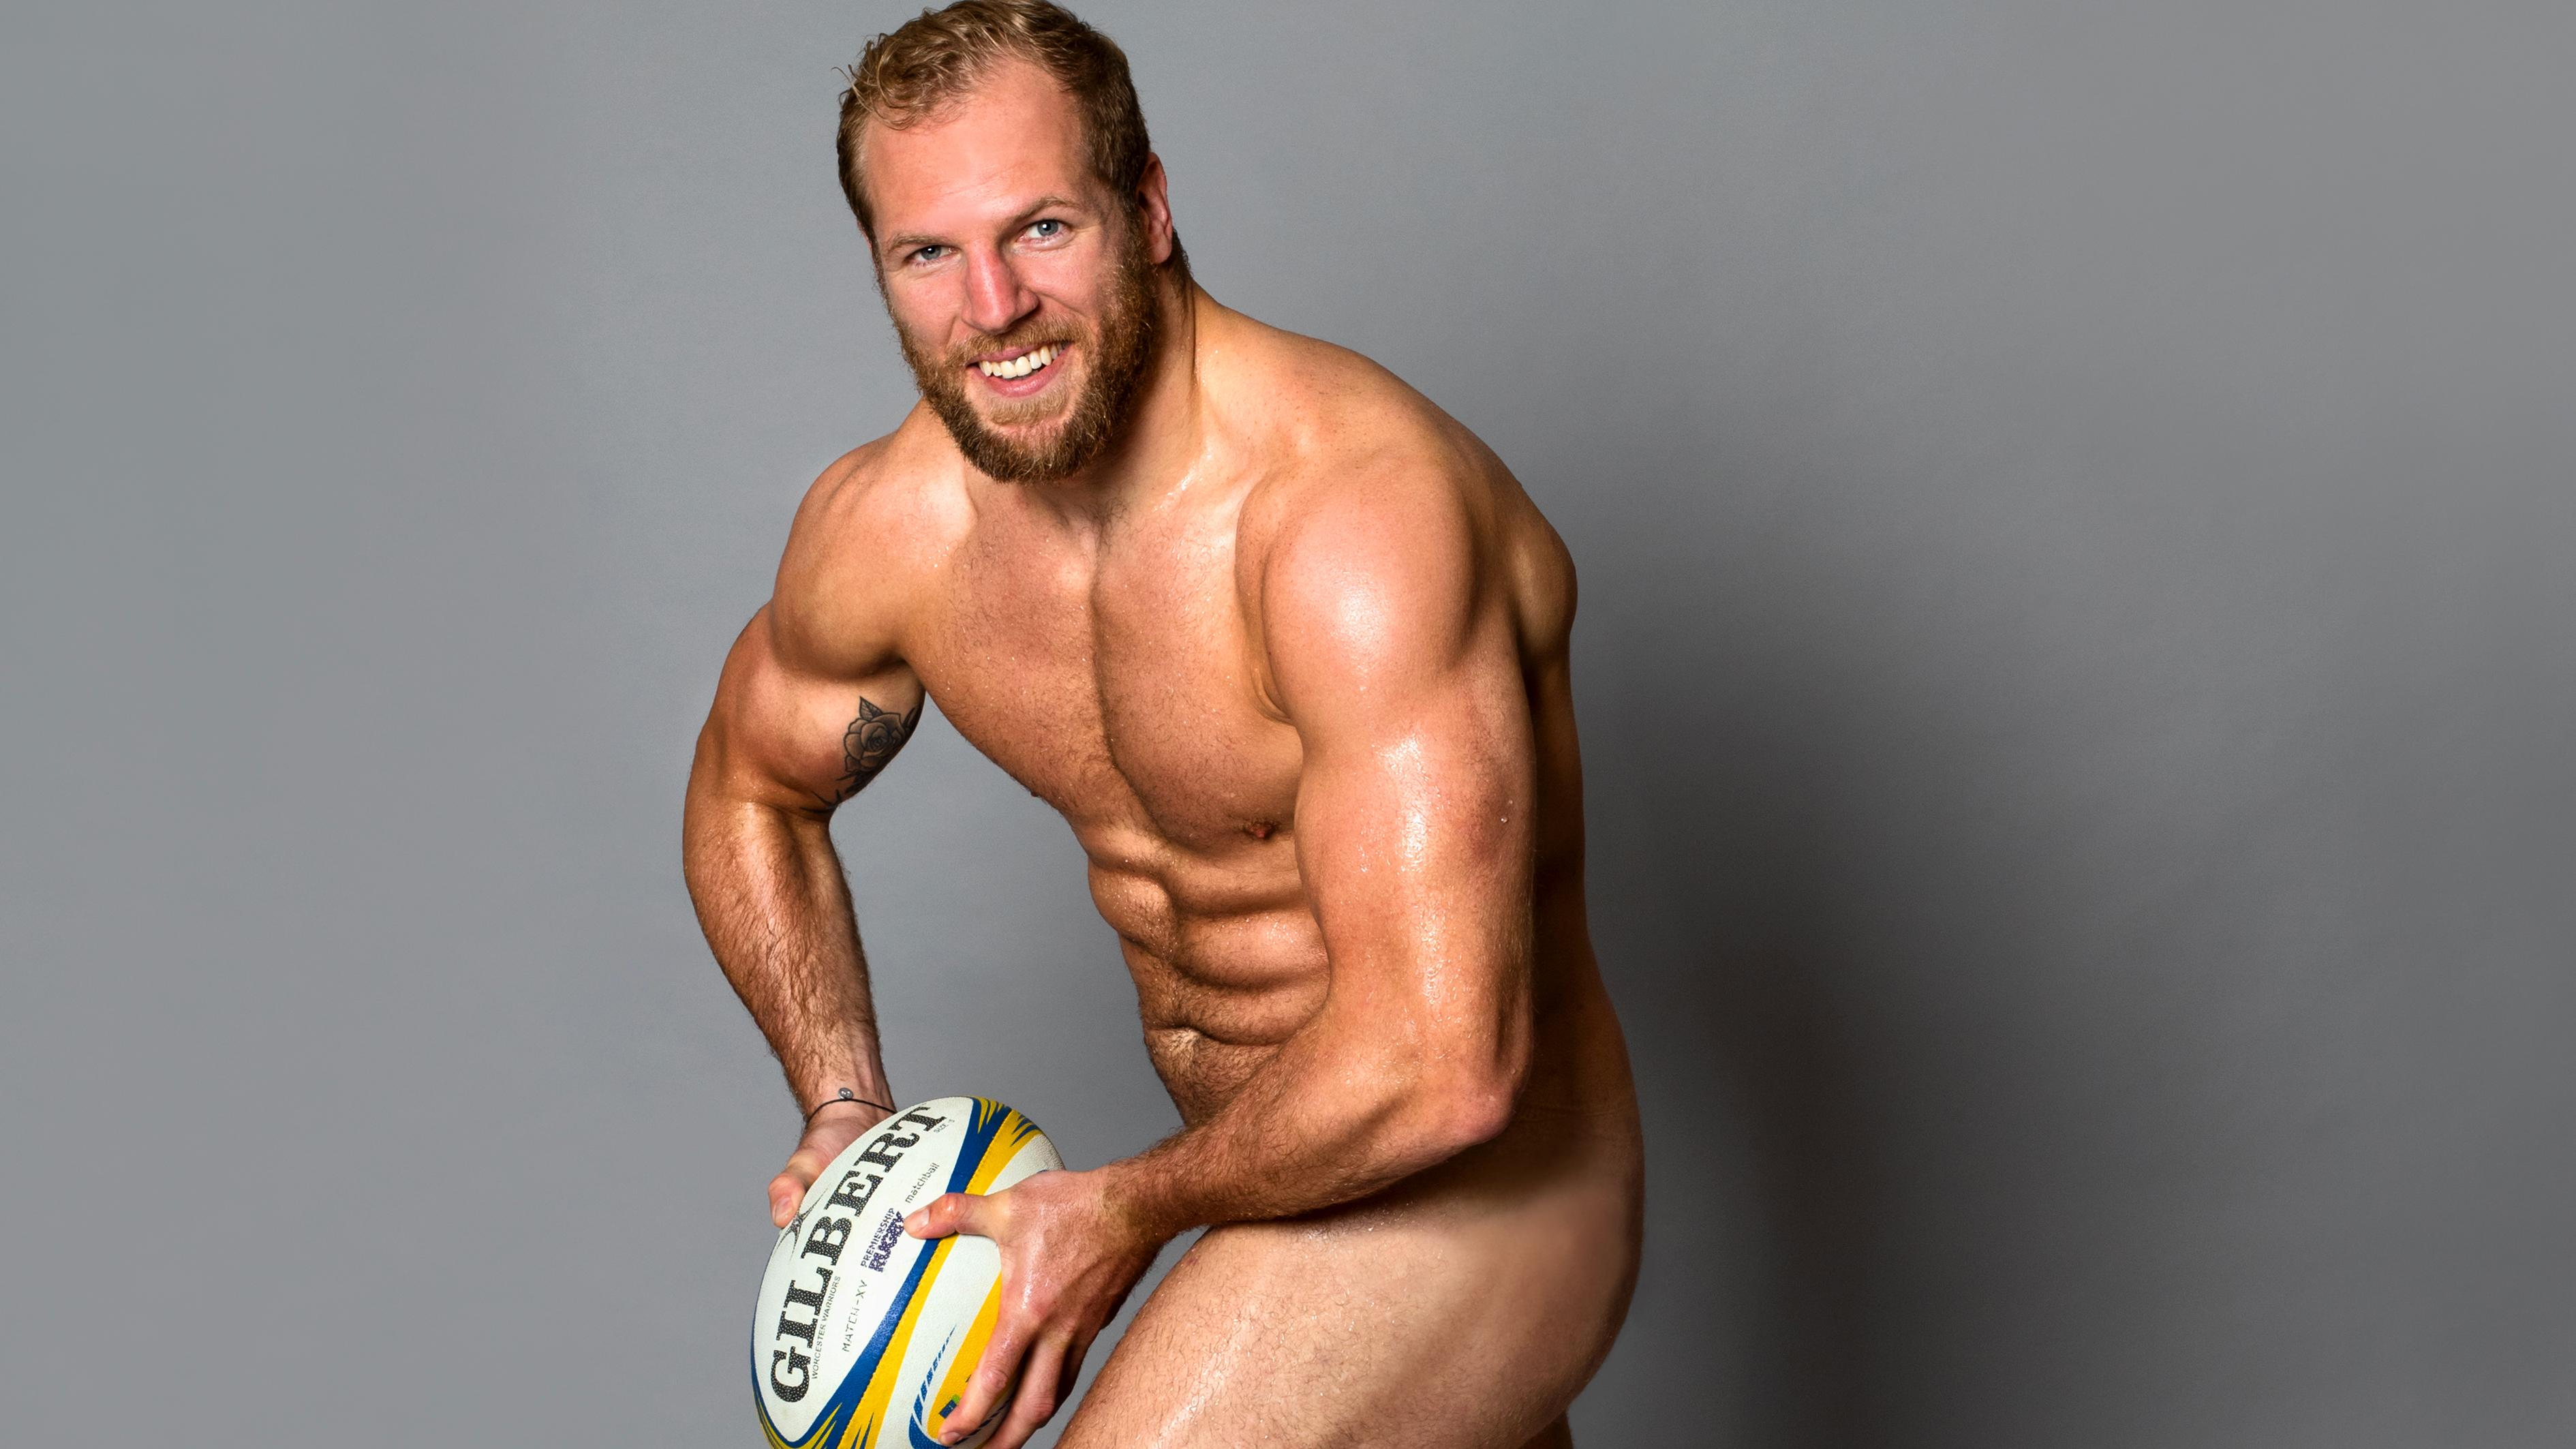 Rugby men nail in the lockerroom